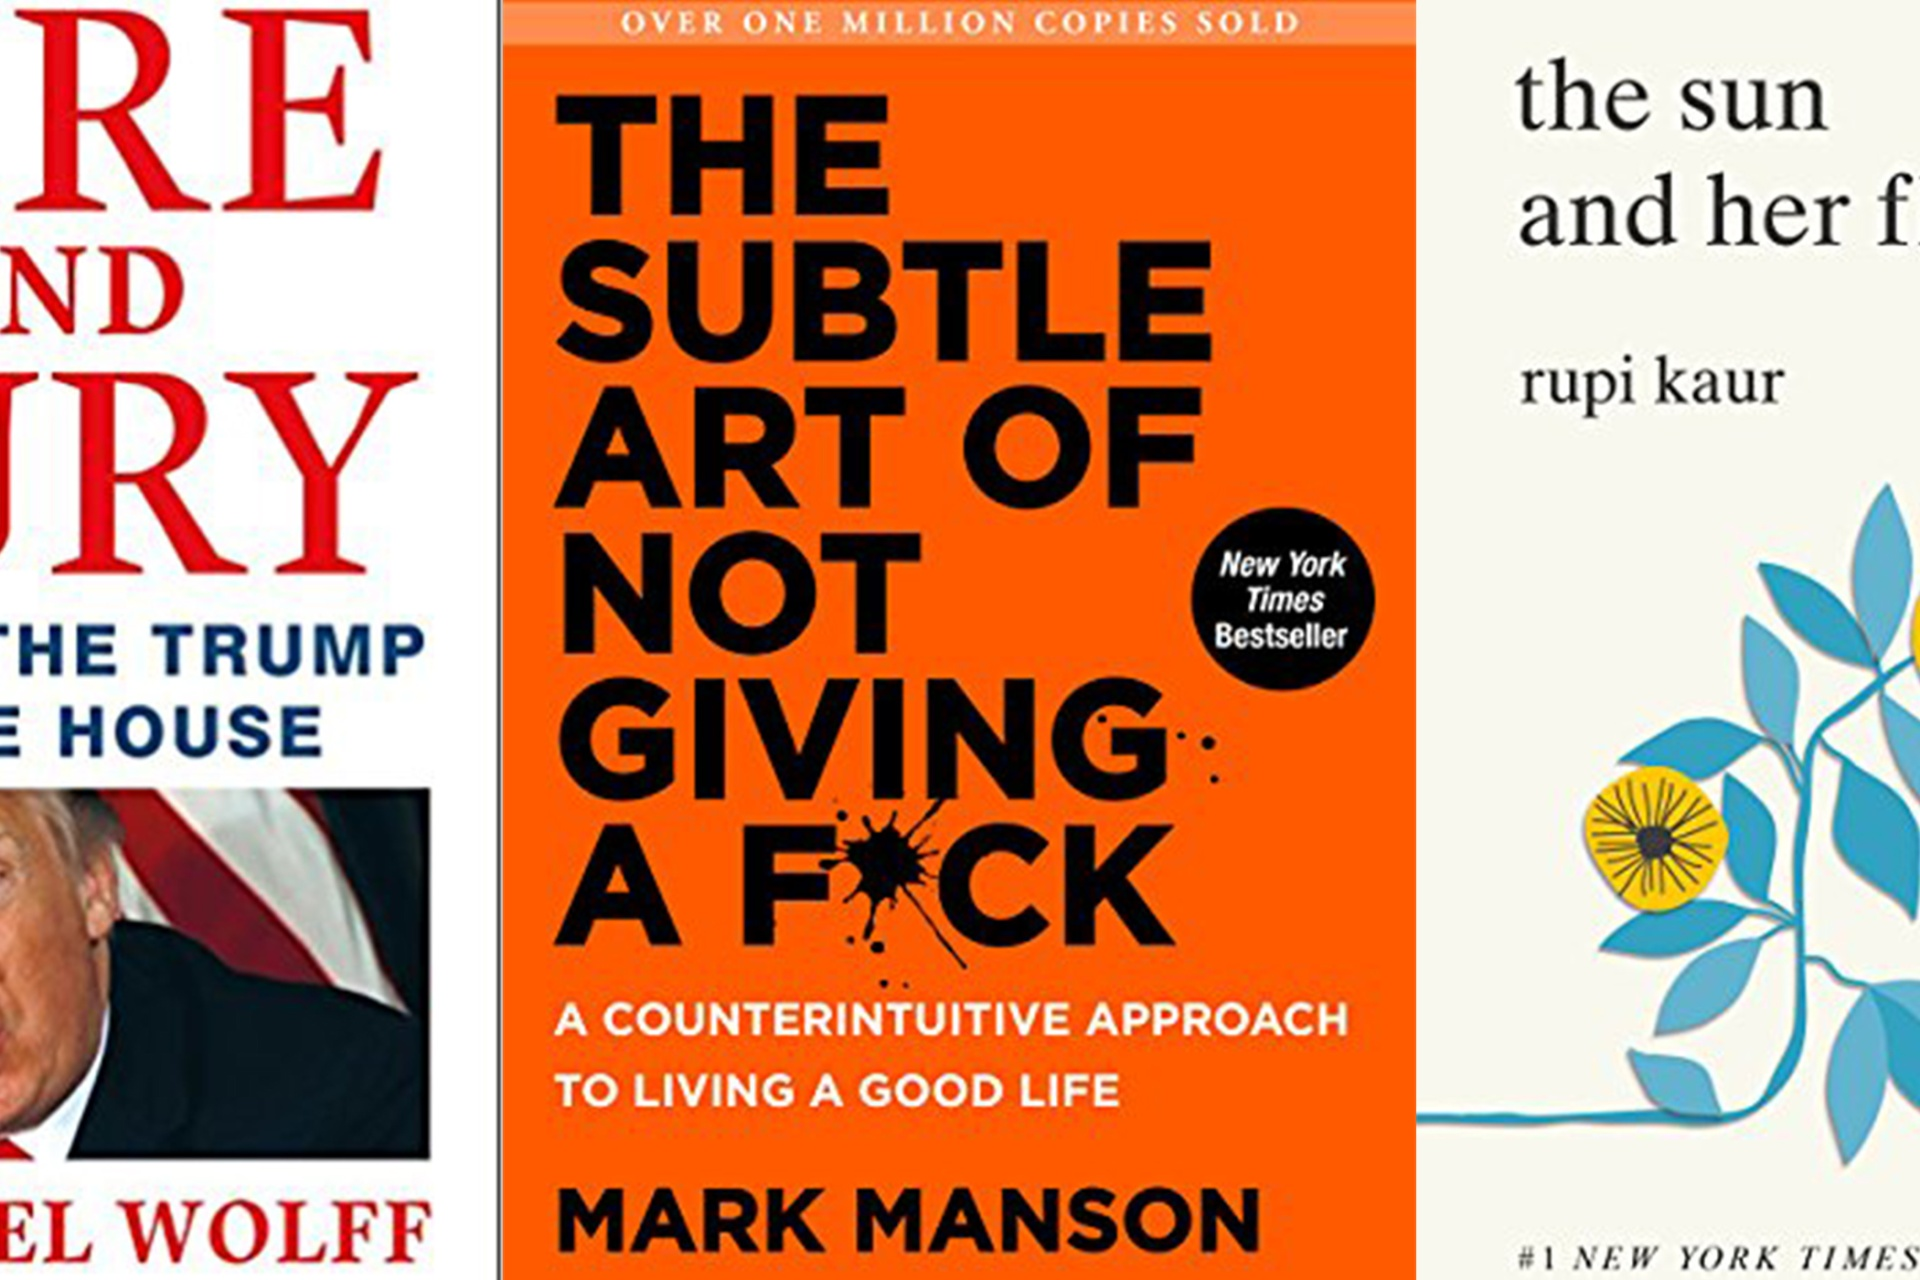 Bestselling books of 2018